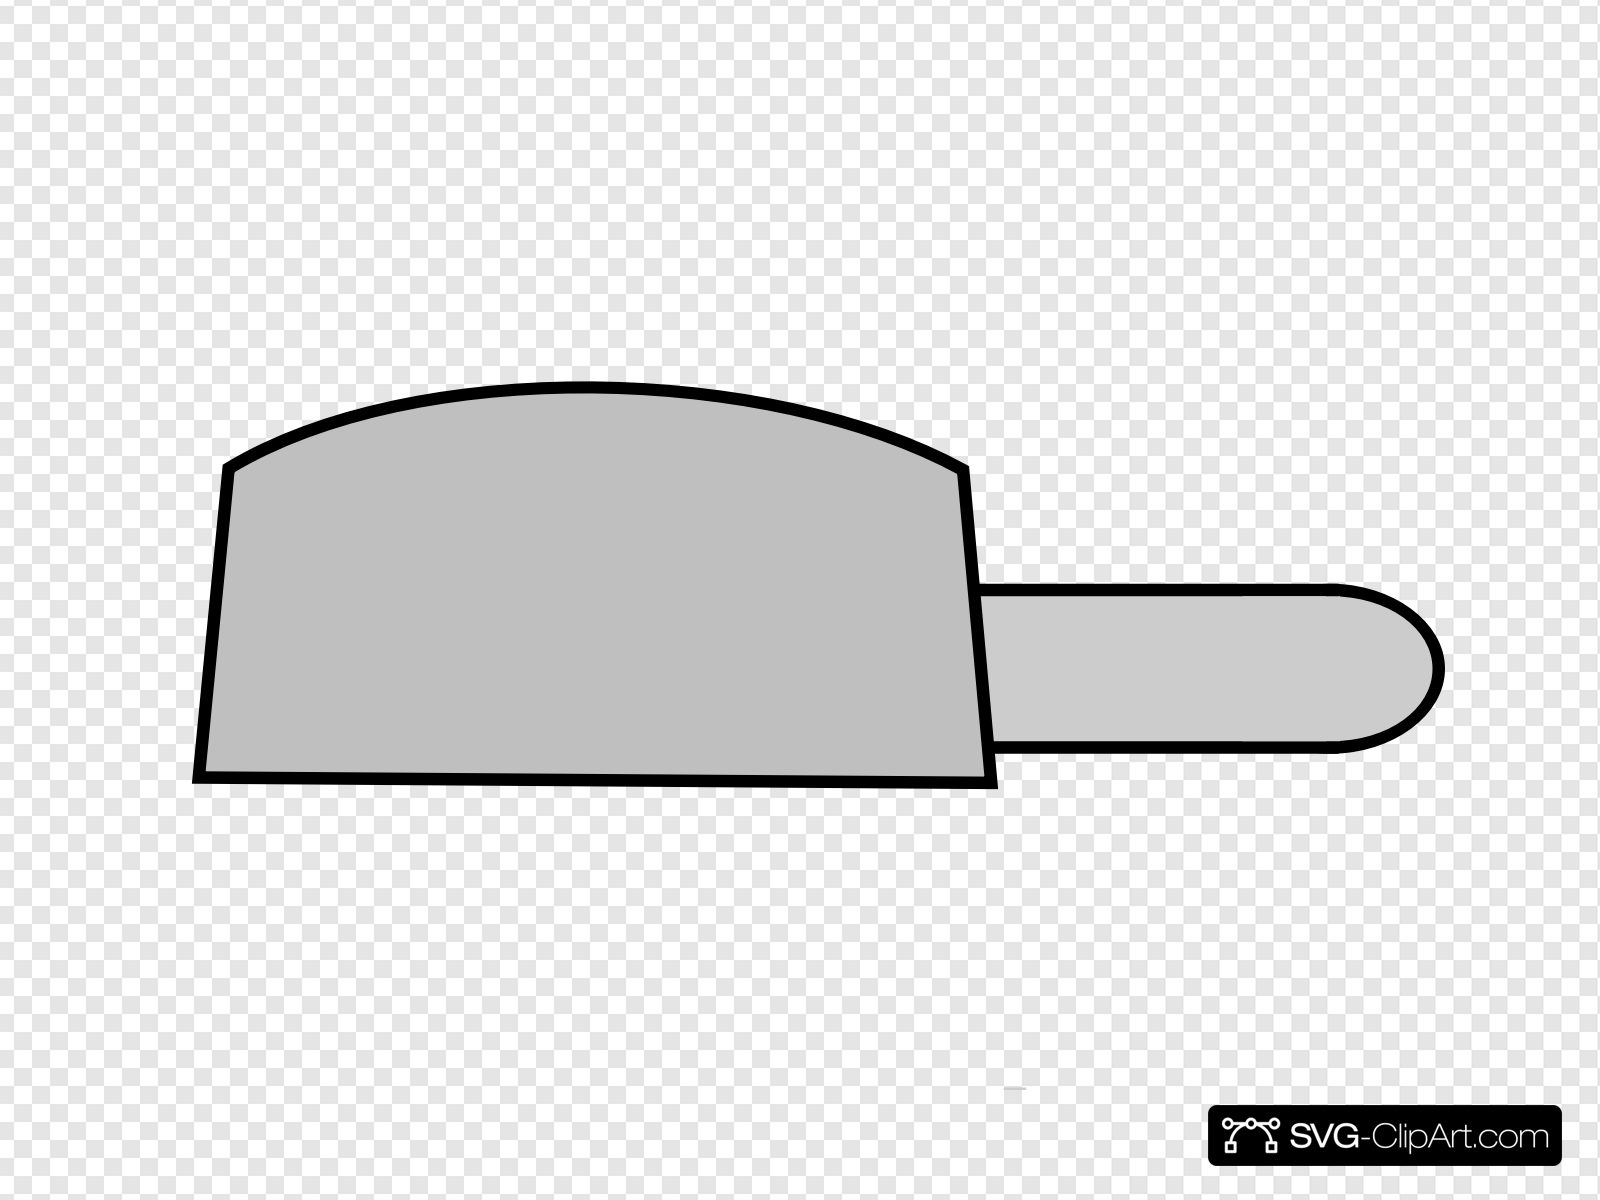 Gray Cooking Pot Clip art, Icon and SVG.